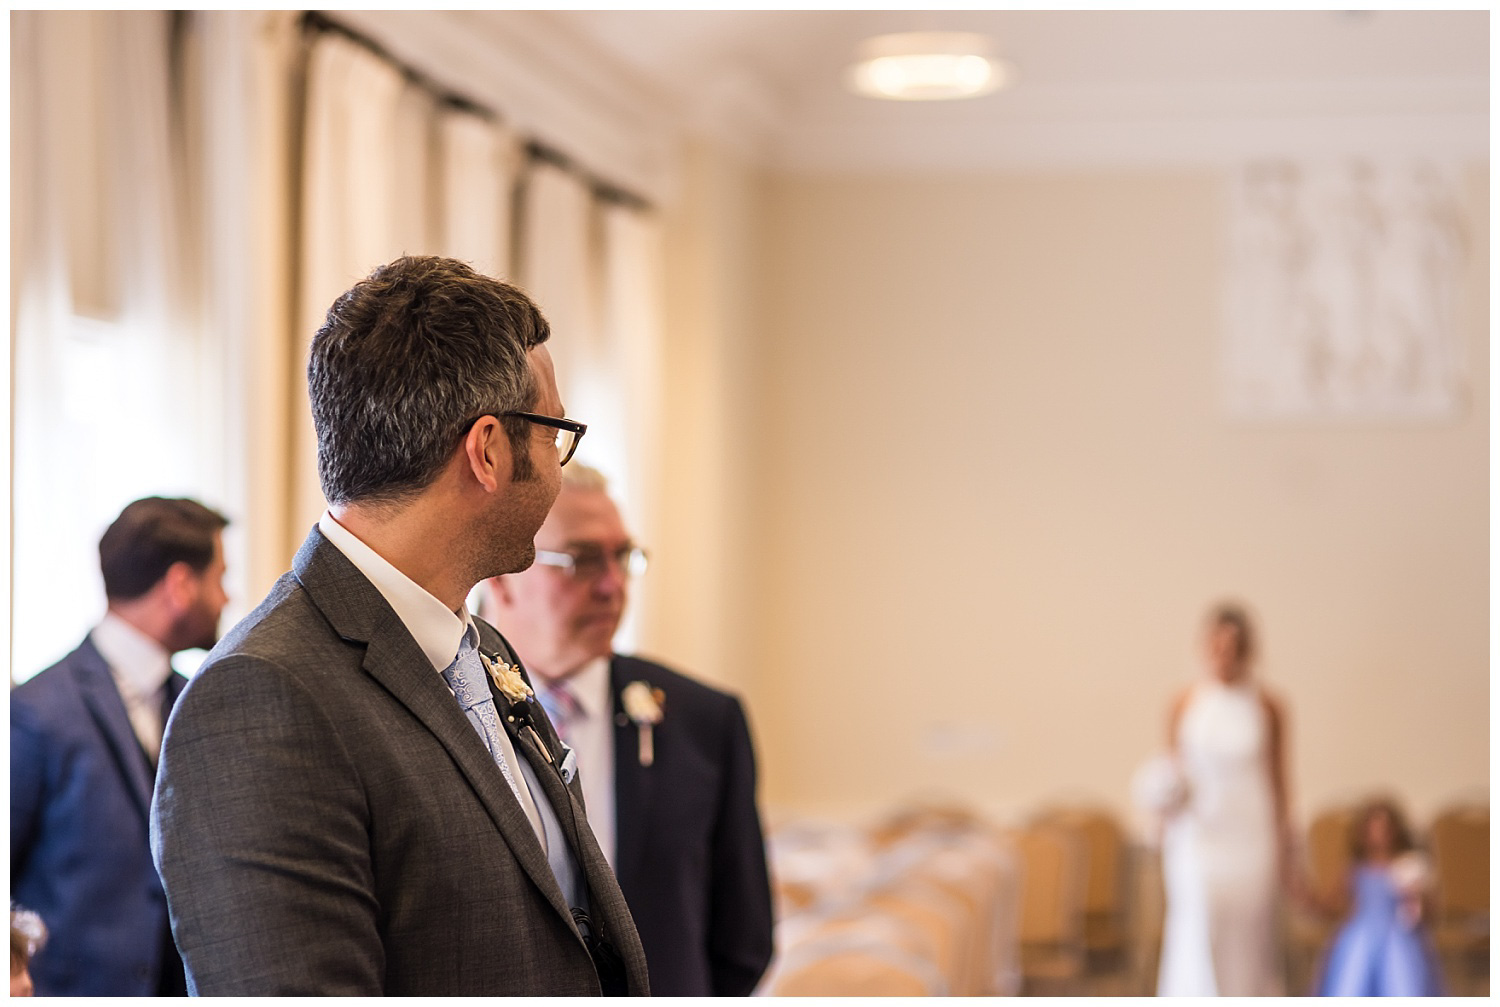 Groom waiting for bride | York House wedding ceremony